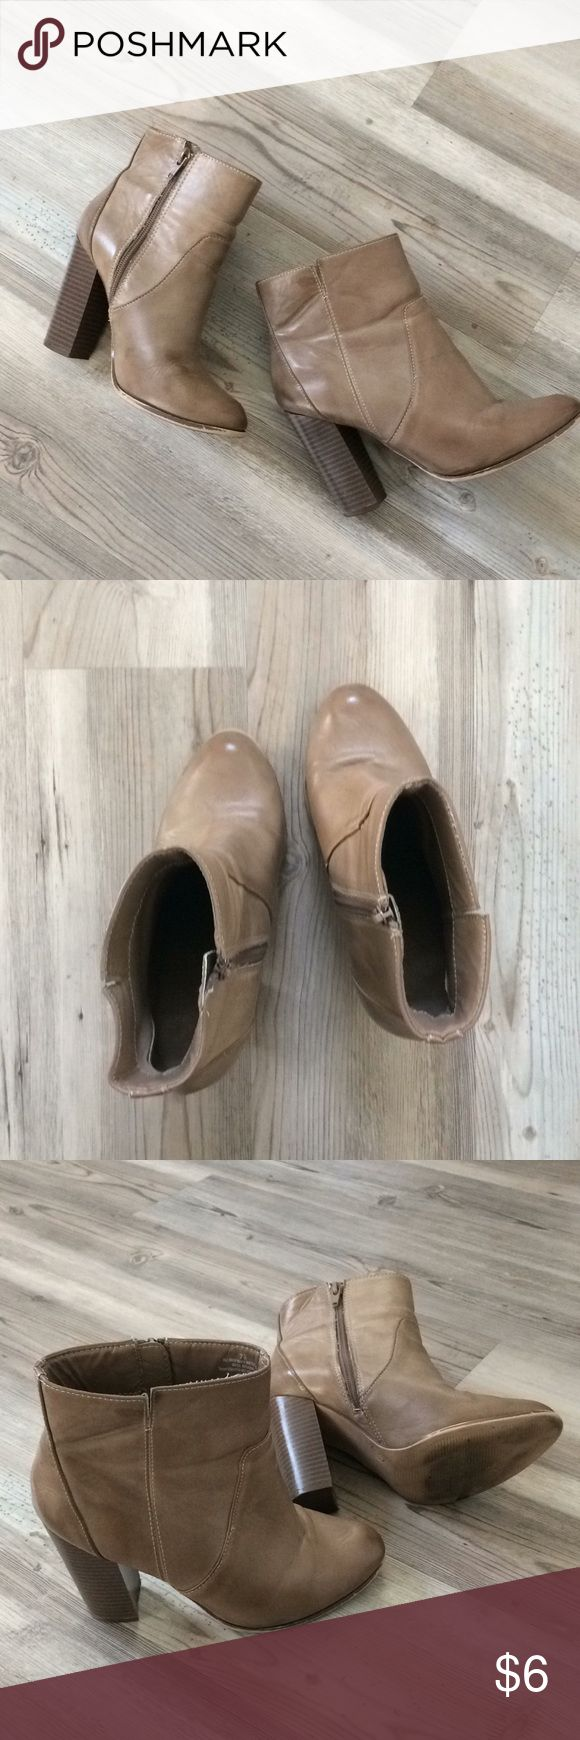 """A+ by Target Boots Tan A+ by Target brand ankle boots w/ 4"""" heels. Good used condition. Zippers fully functional! A+ Shoes Heeled Boots"""